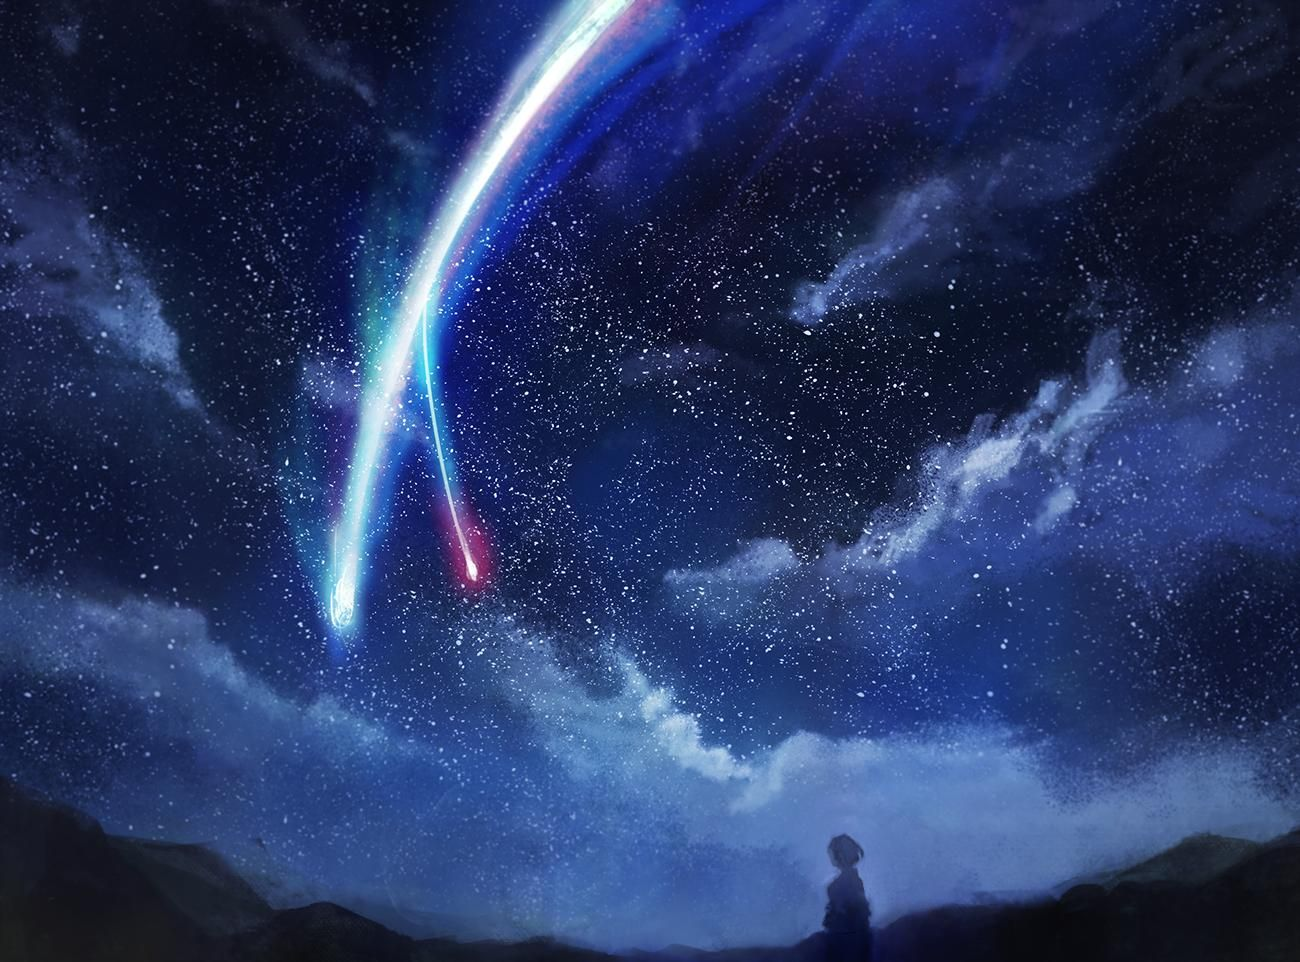 Comet in the night sky [Kimi no Na wa.] Kimi no na wa